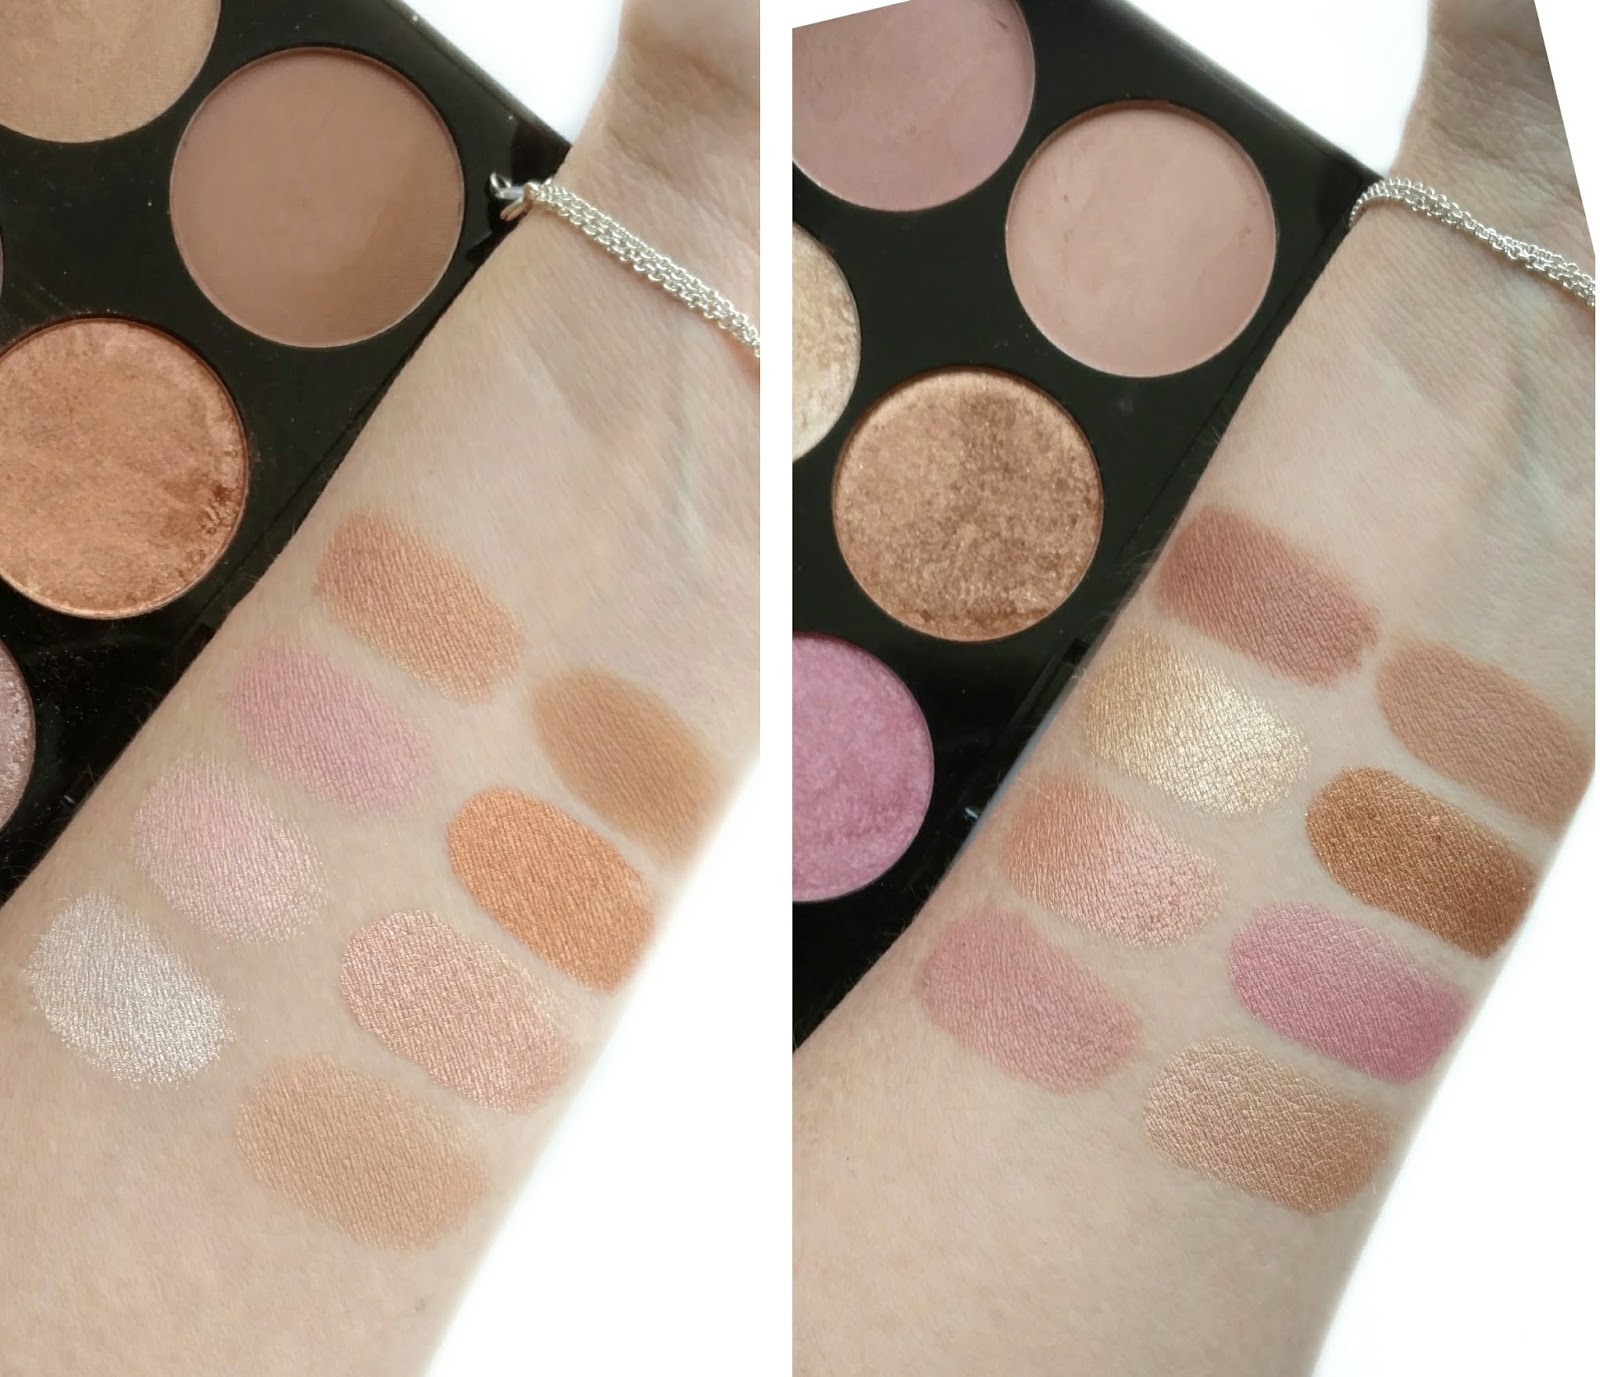 Golden Sugar 1 (left) and Golden Sugar 2 (right). Overall, the Makeup Revolution ...